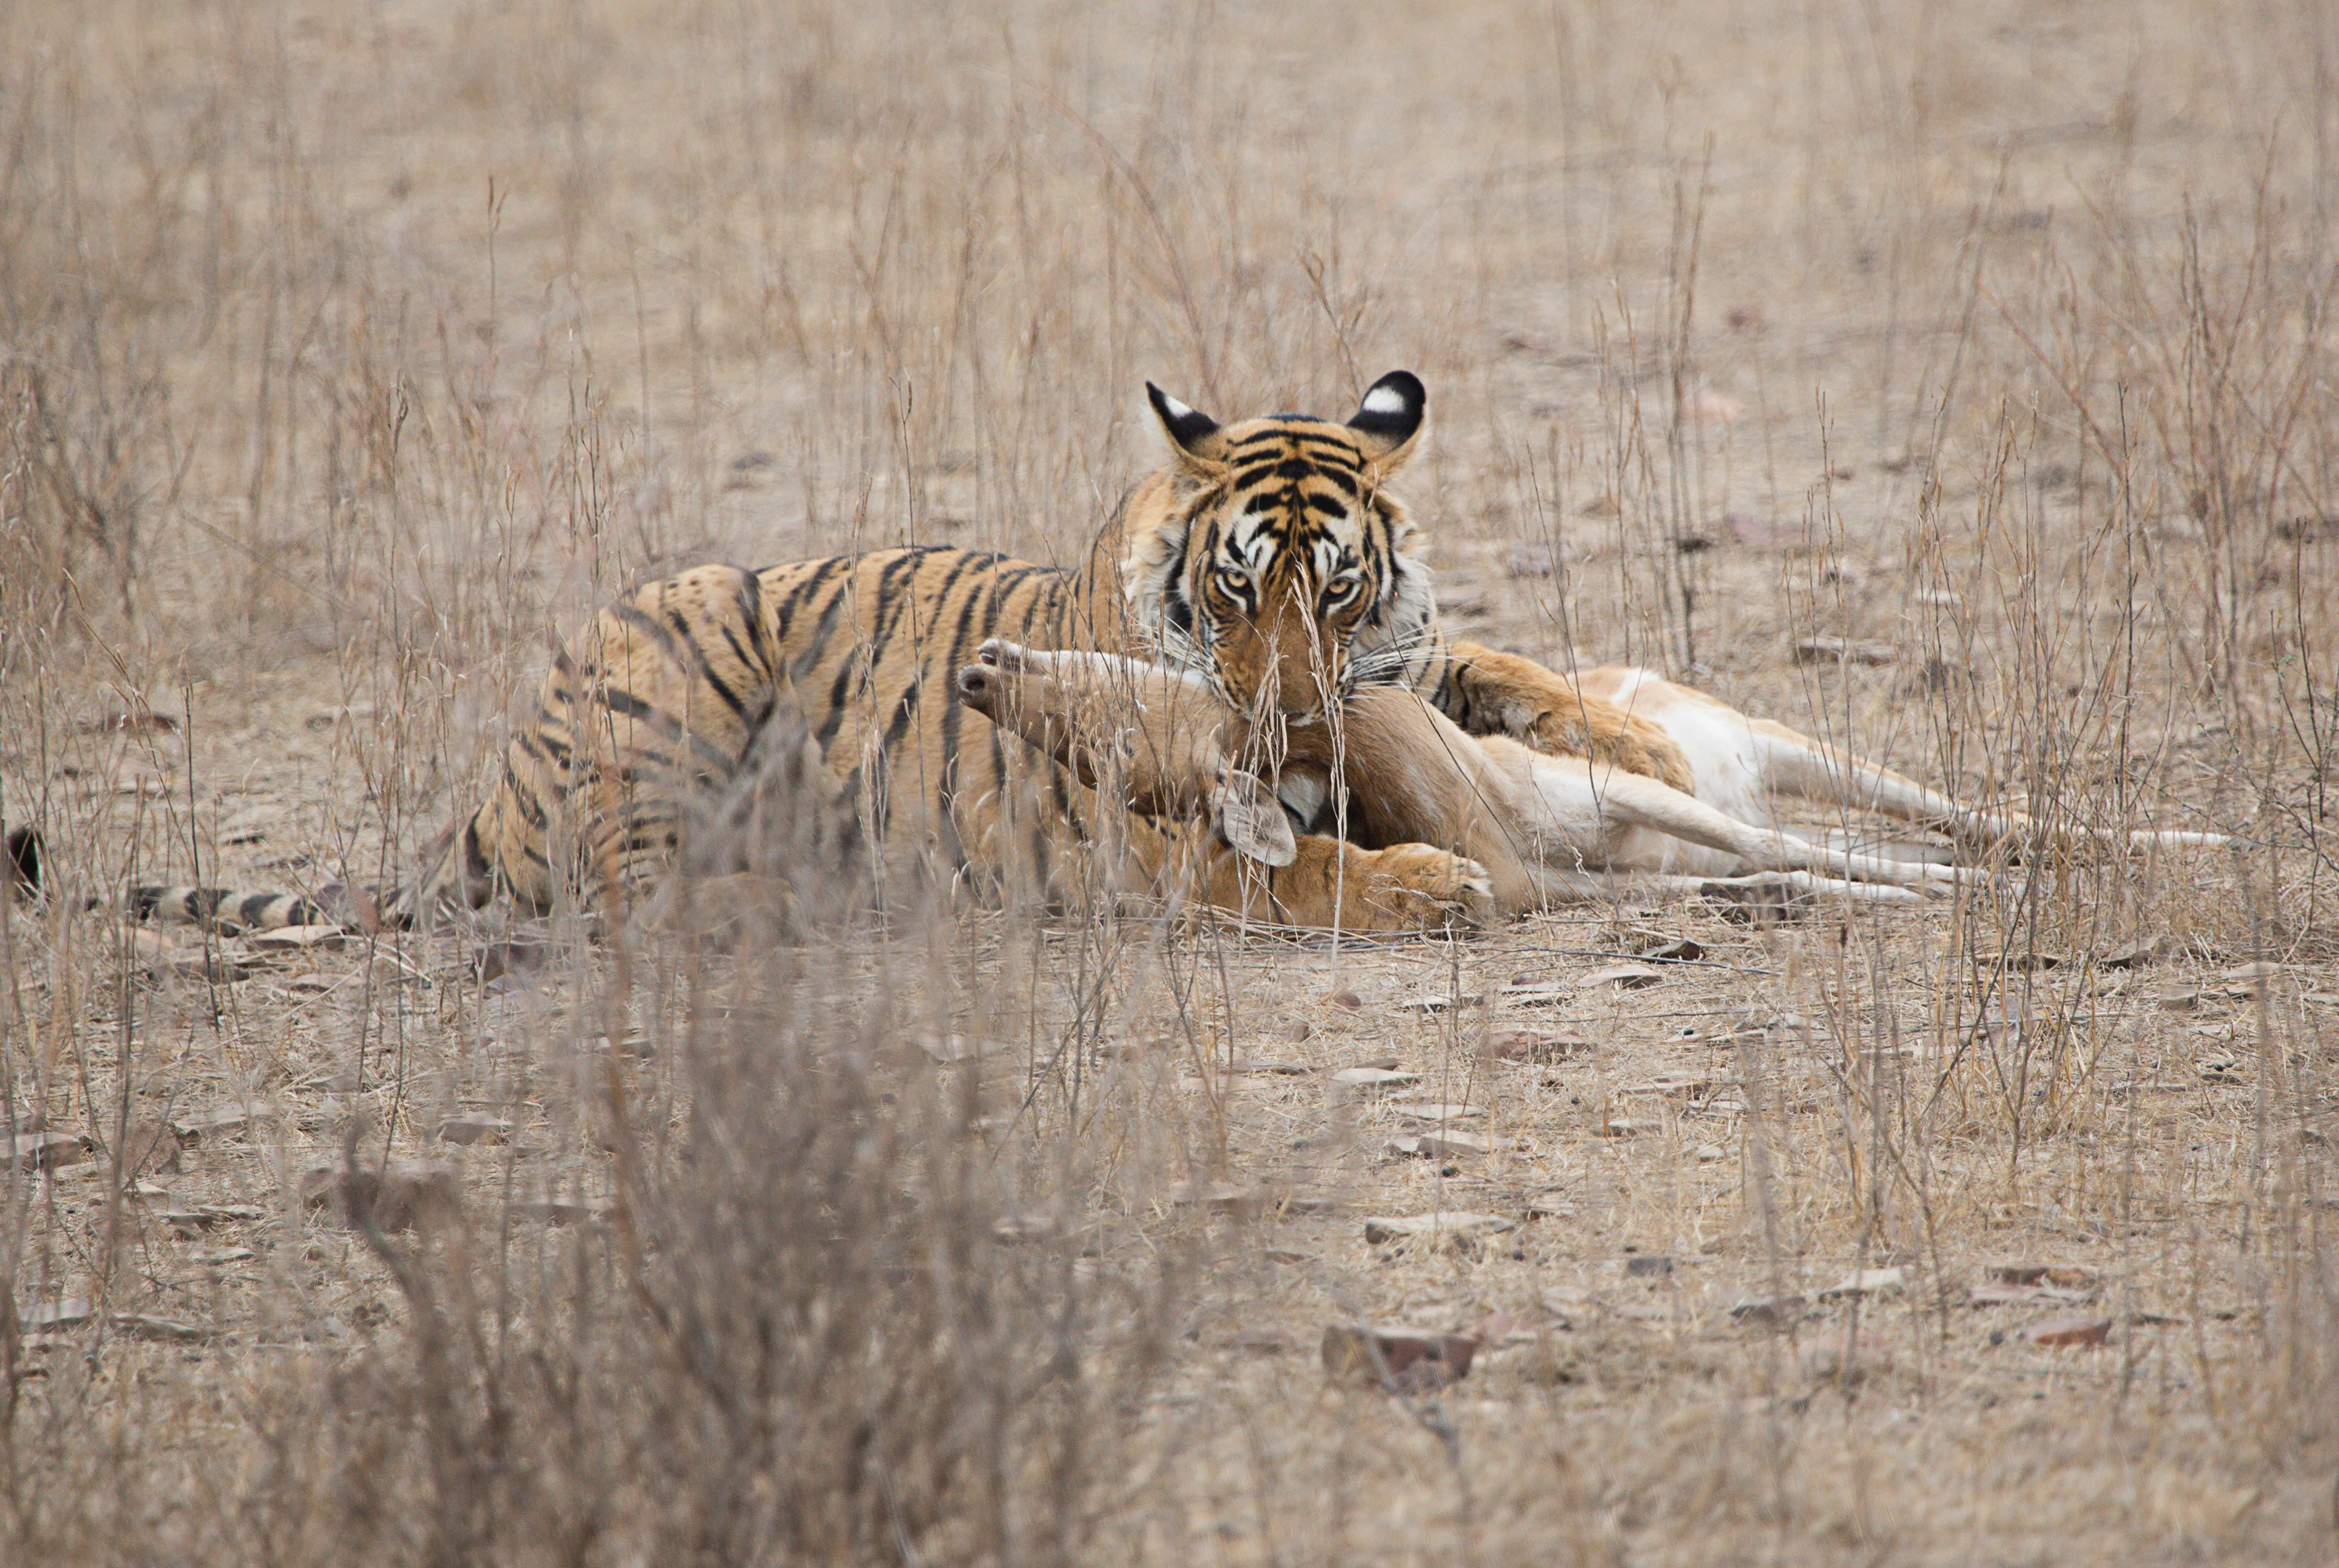 Tiger lying down in sparse ground with its teeth around the neck of a deer